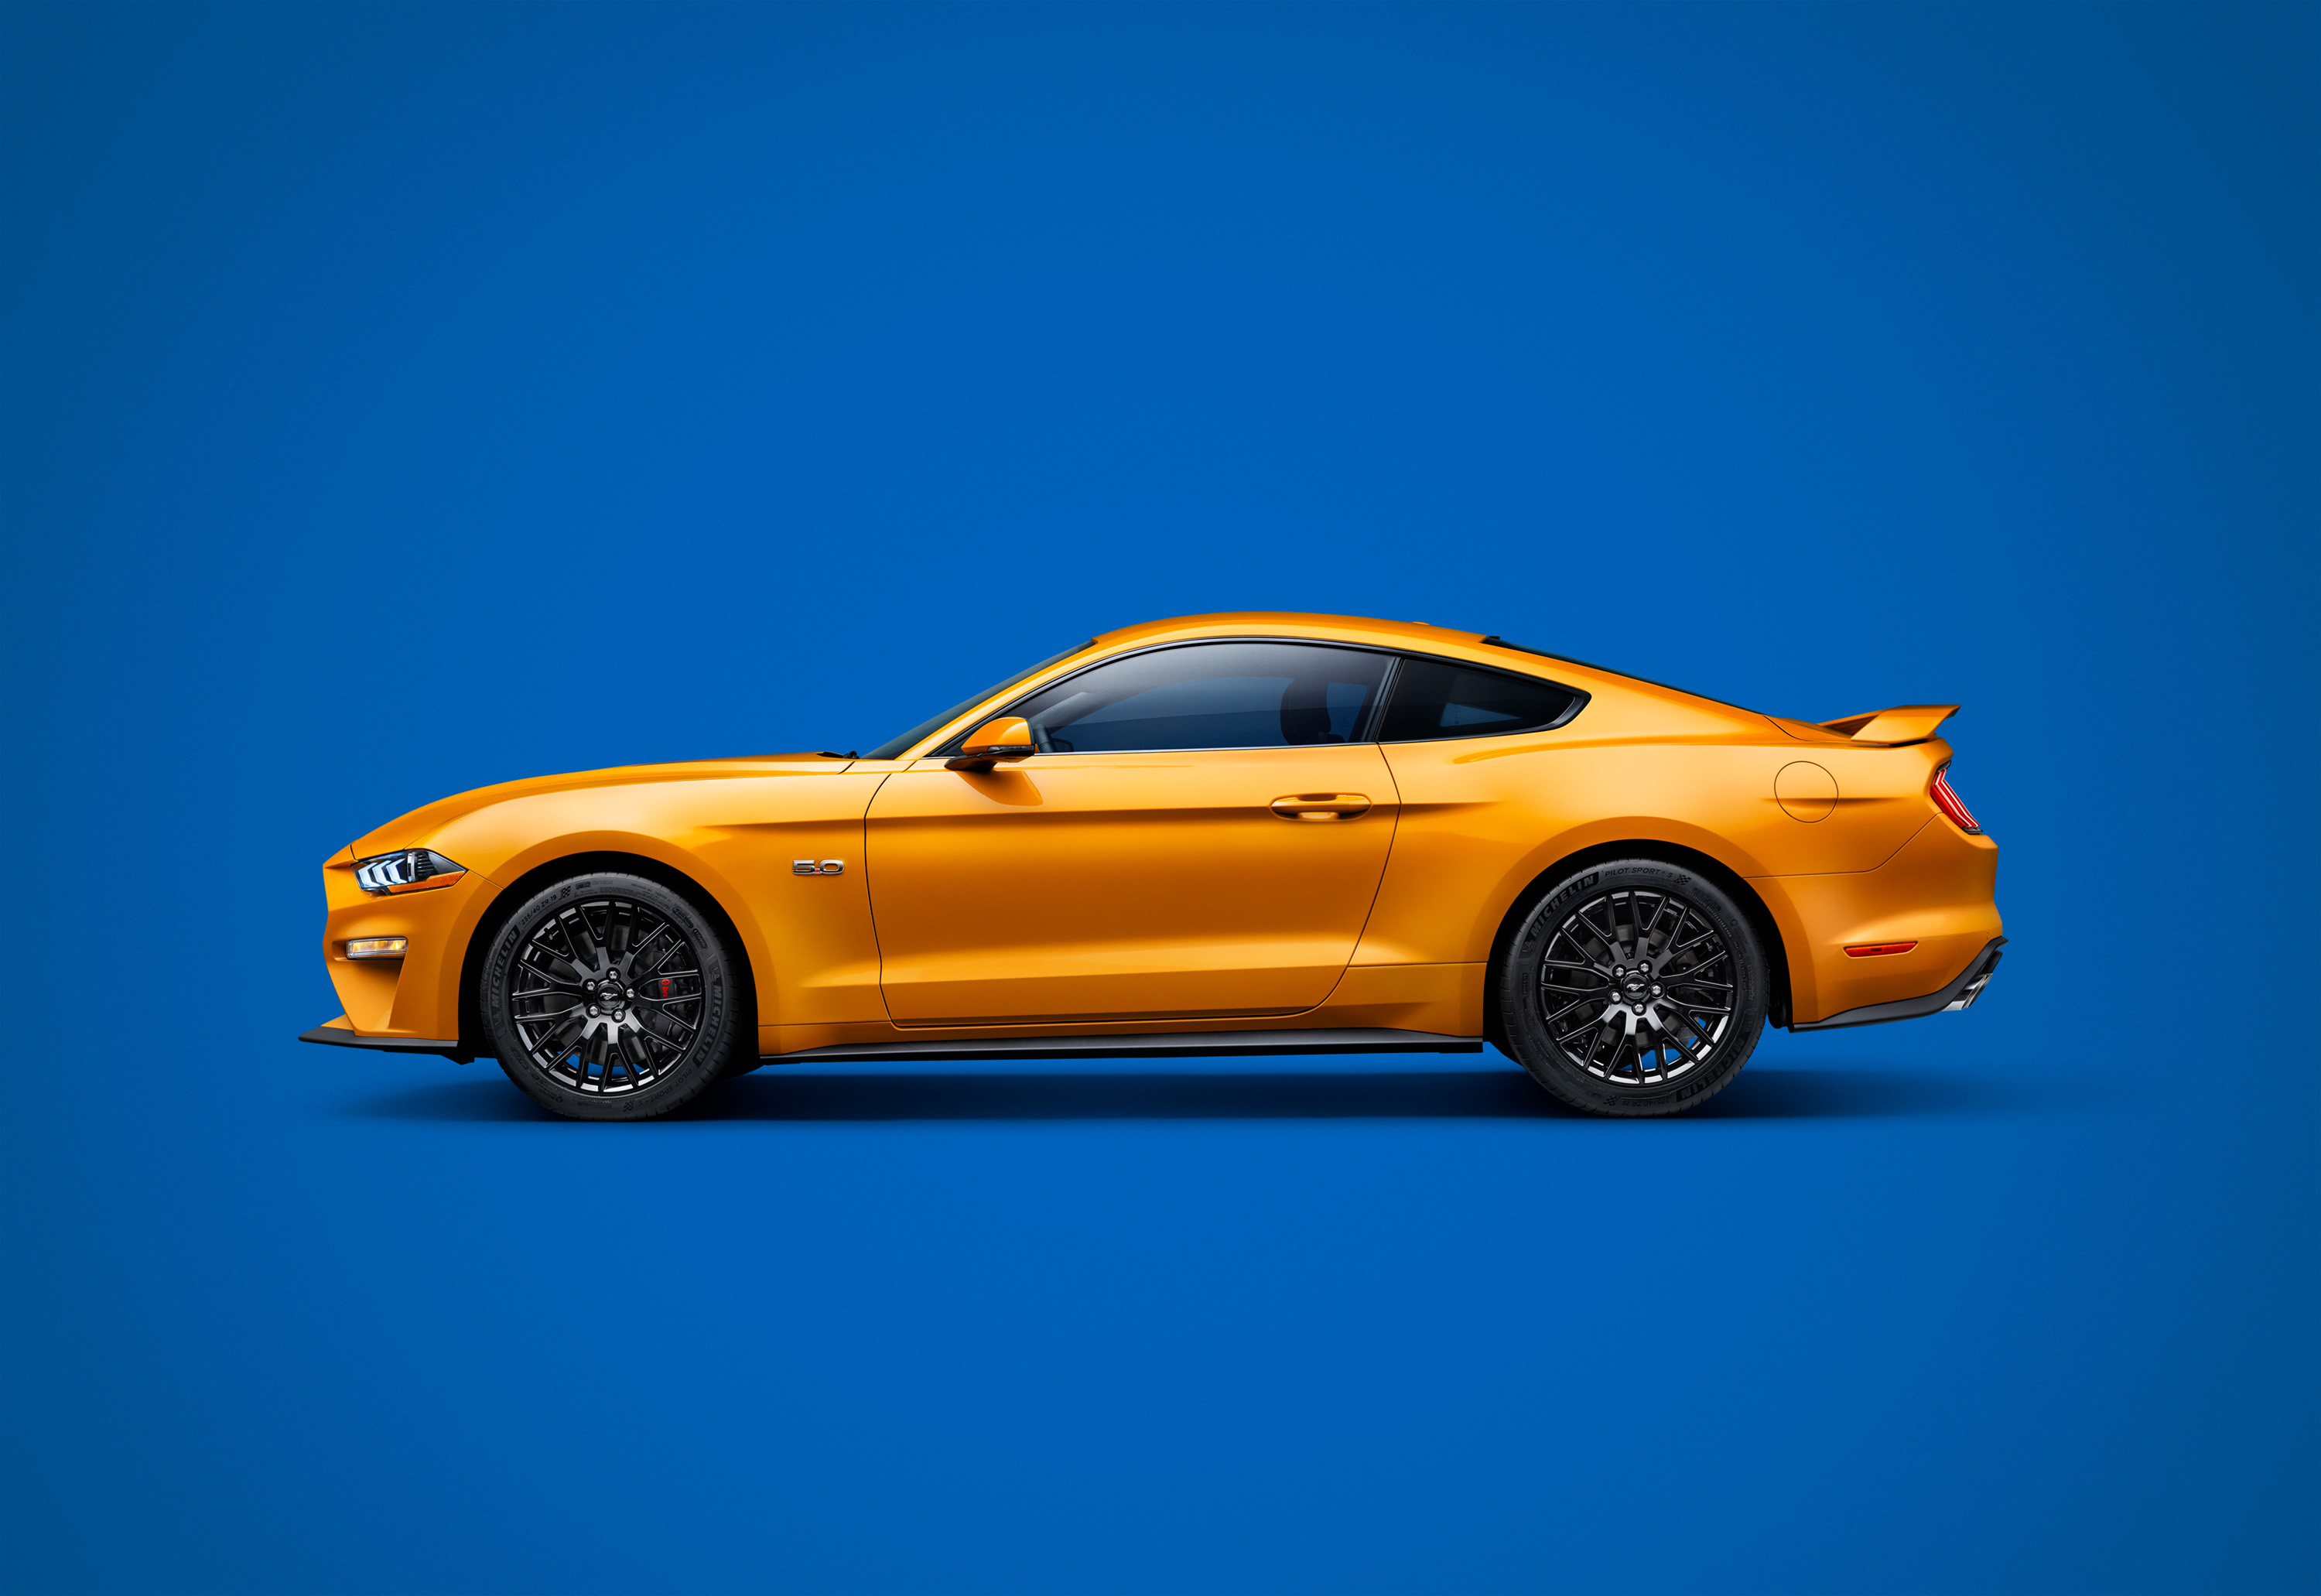 Ford Mustang GT 2018 New, HD Cars, 4k Wallpapers, Images ...